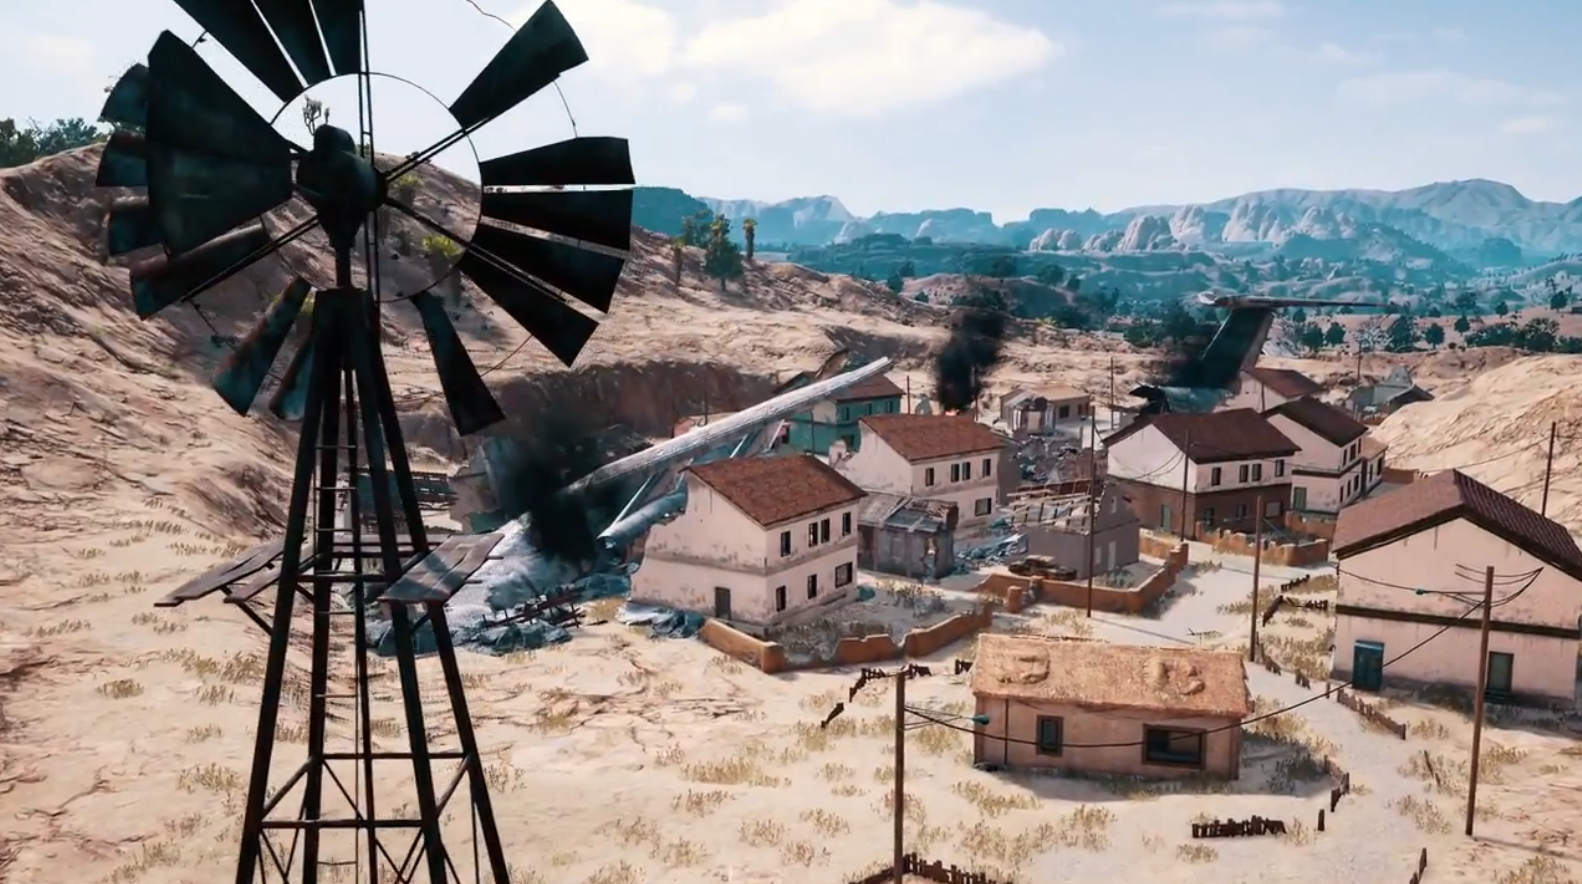 PlayerUnknown's Battlegrounds Gets A New Trailer Showing Its Desert Map